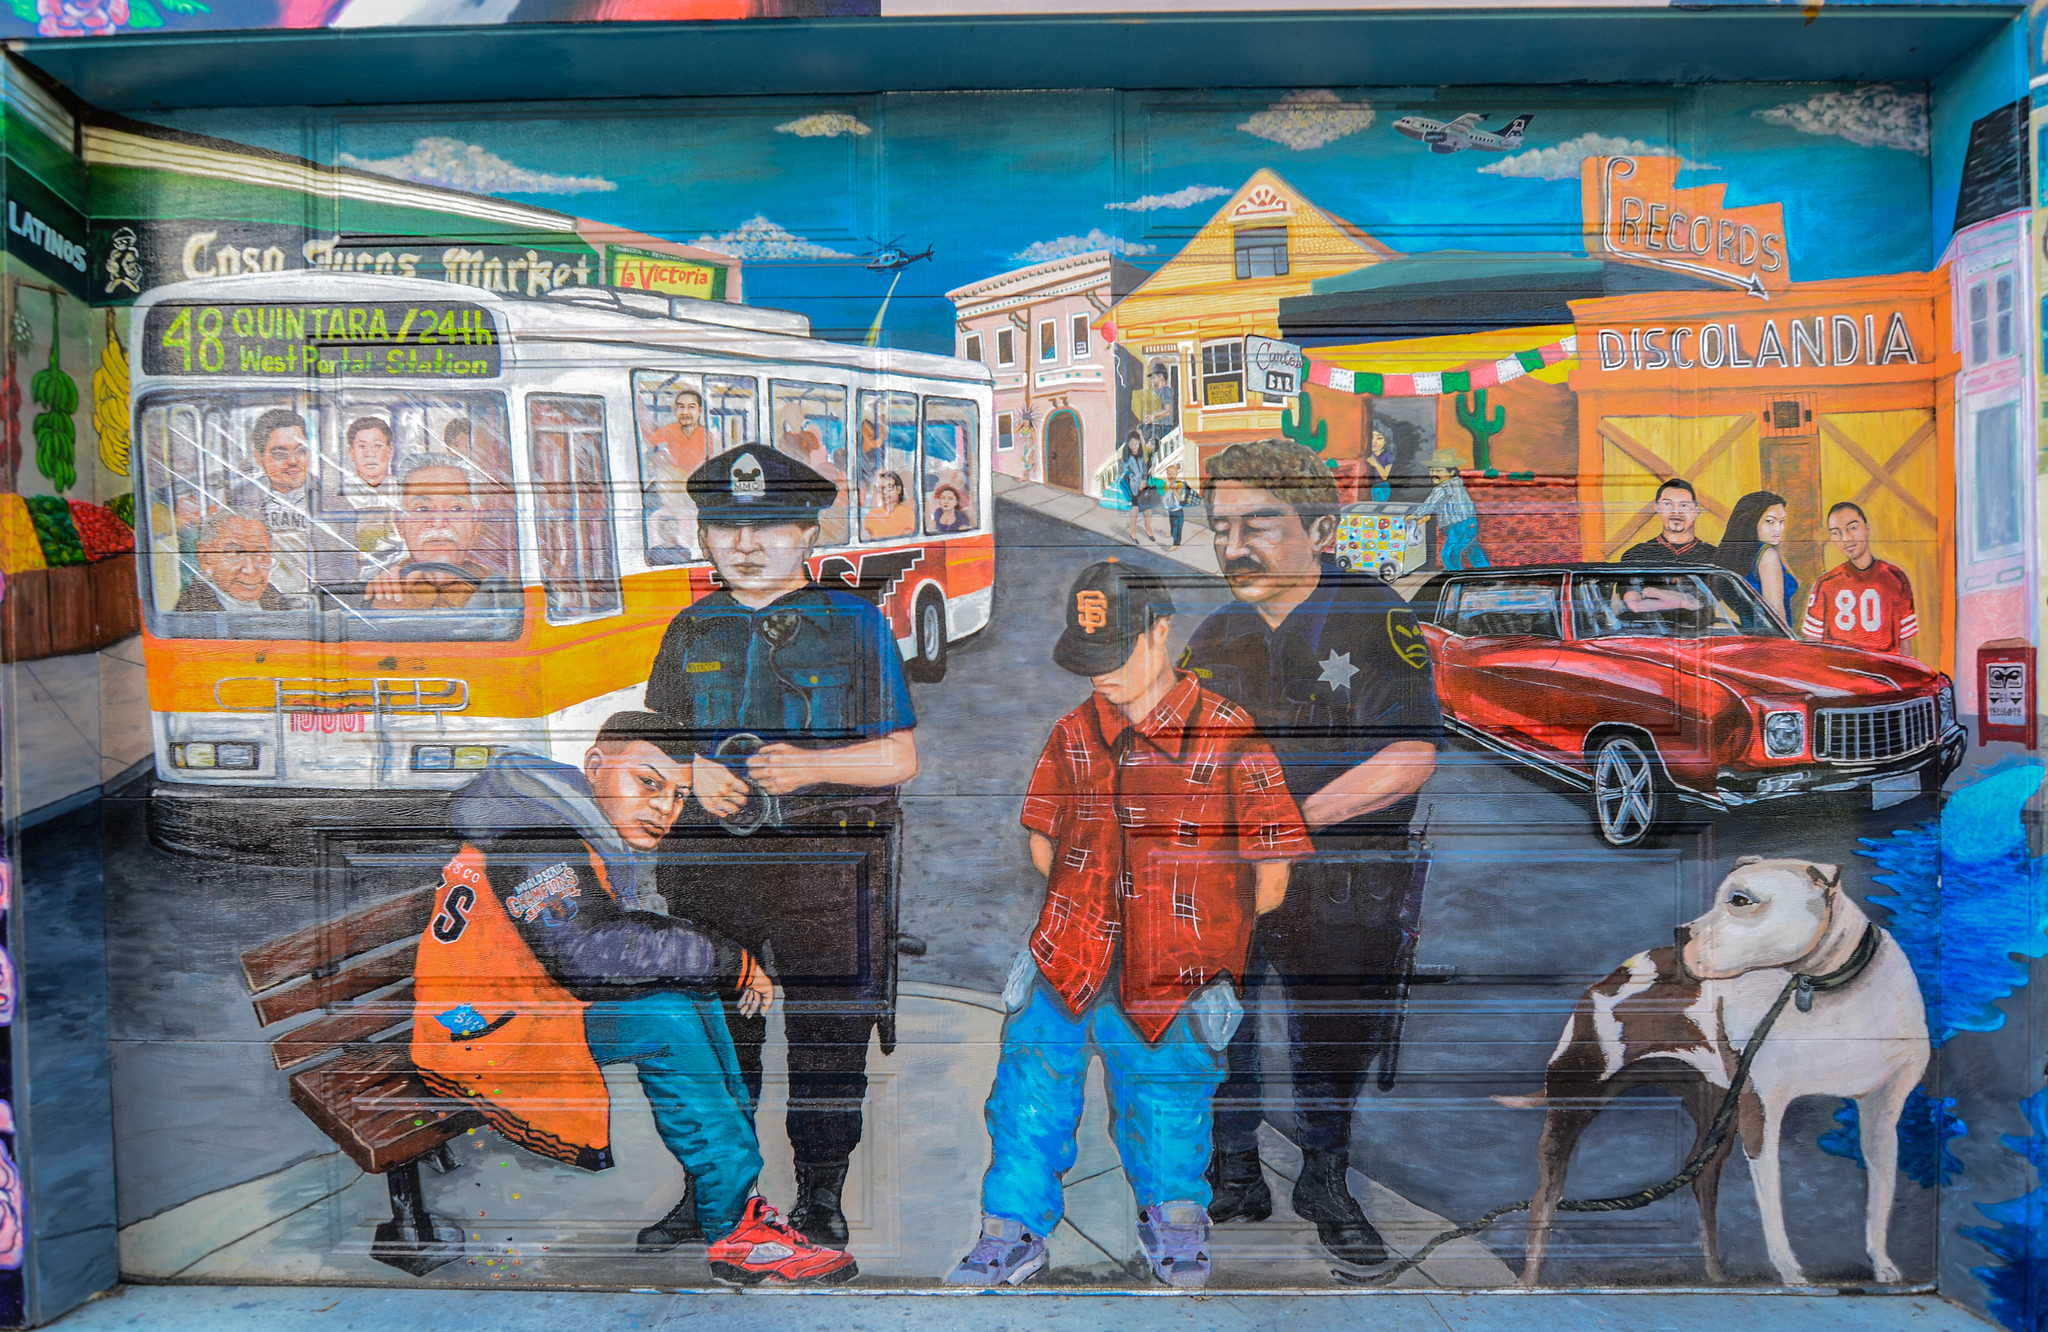 street art of two cops arresting youth immigrants in the Mission district